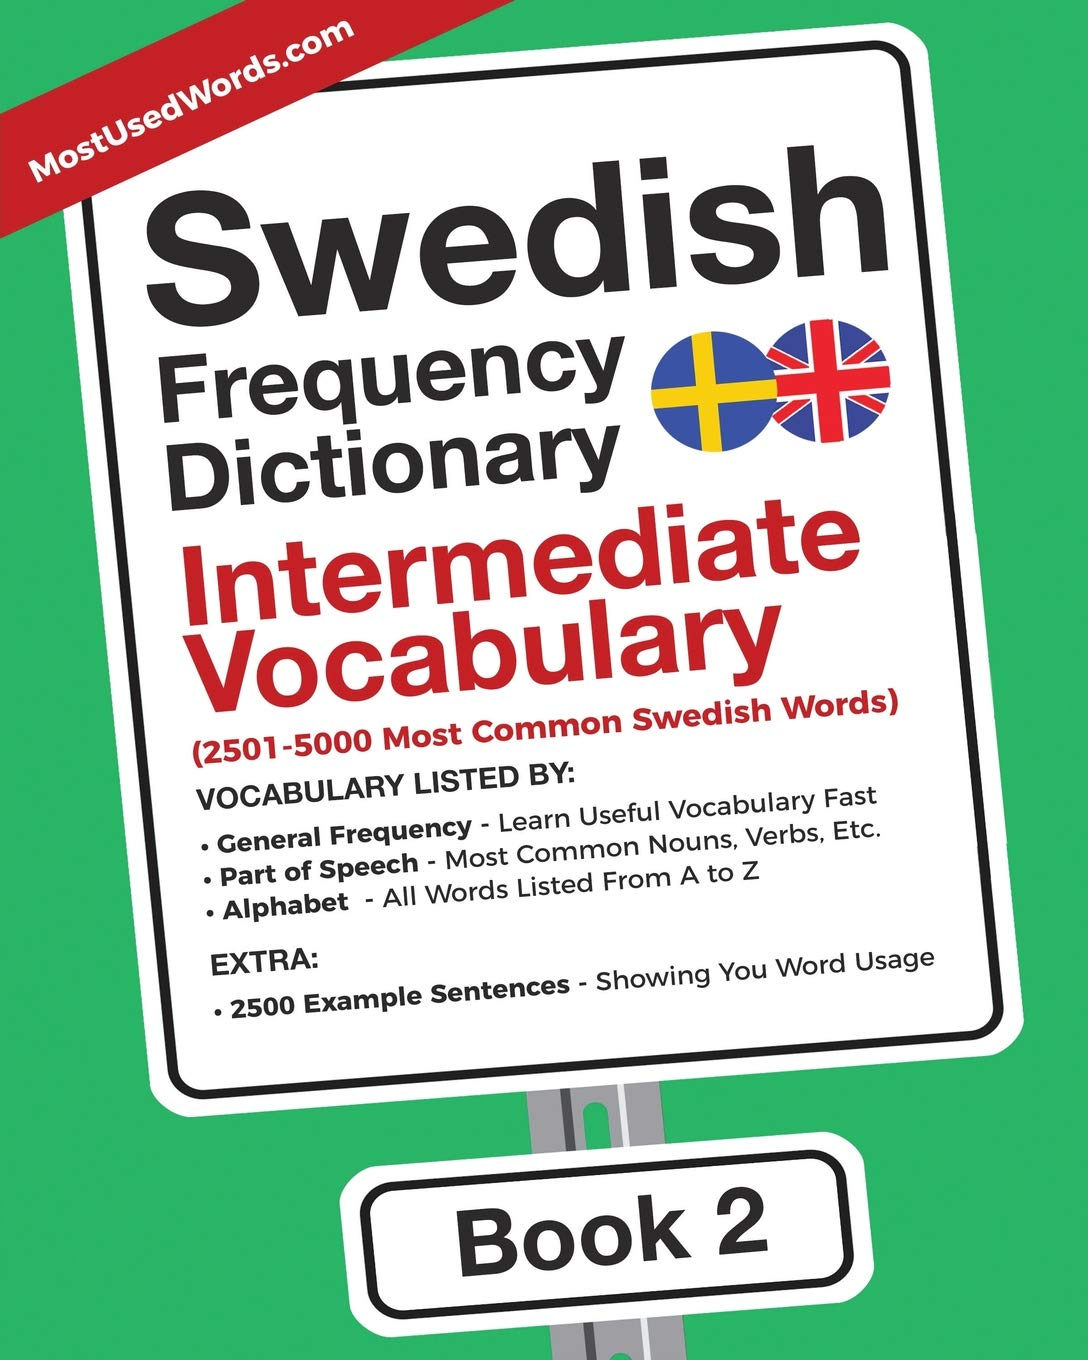 Swedish Frequency Dictionary   Intermediate Vocabulary  2501 5000 Most Common Swedish Words  Swedish English Band 2